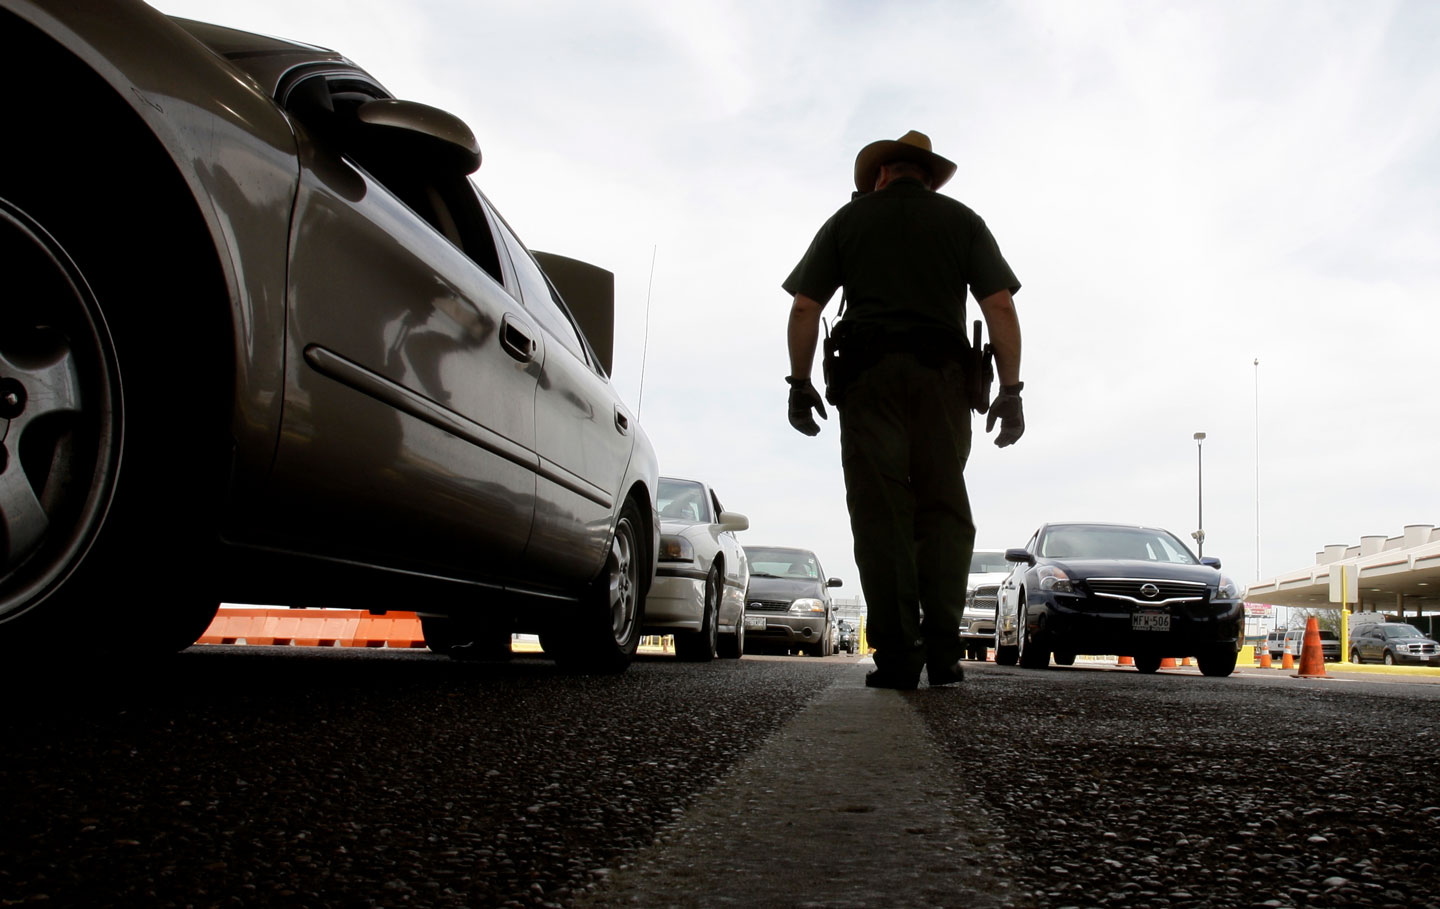 A U.S. Customs and Border Protection agent checks traffic leaving the U.S. to Mexico in Laredo, Texas, Thursday, April 23, 2009. (AP Photo/LM Otero)